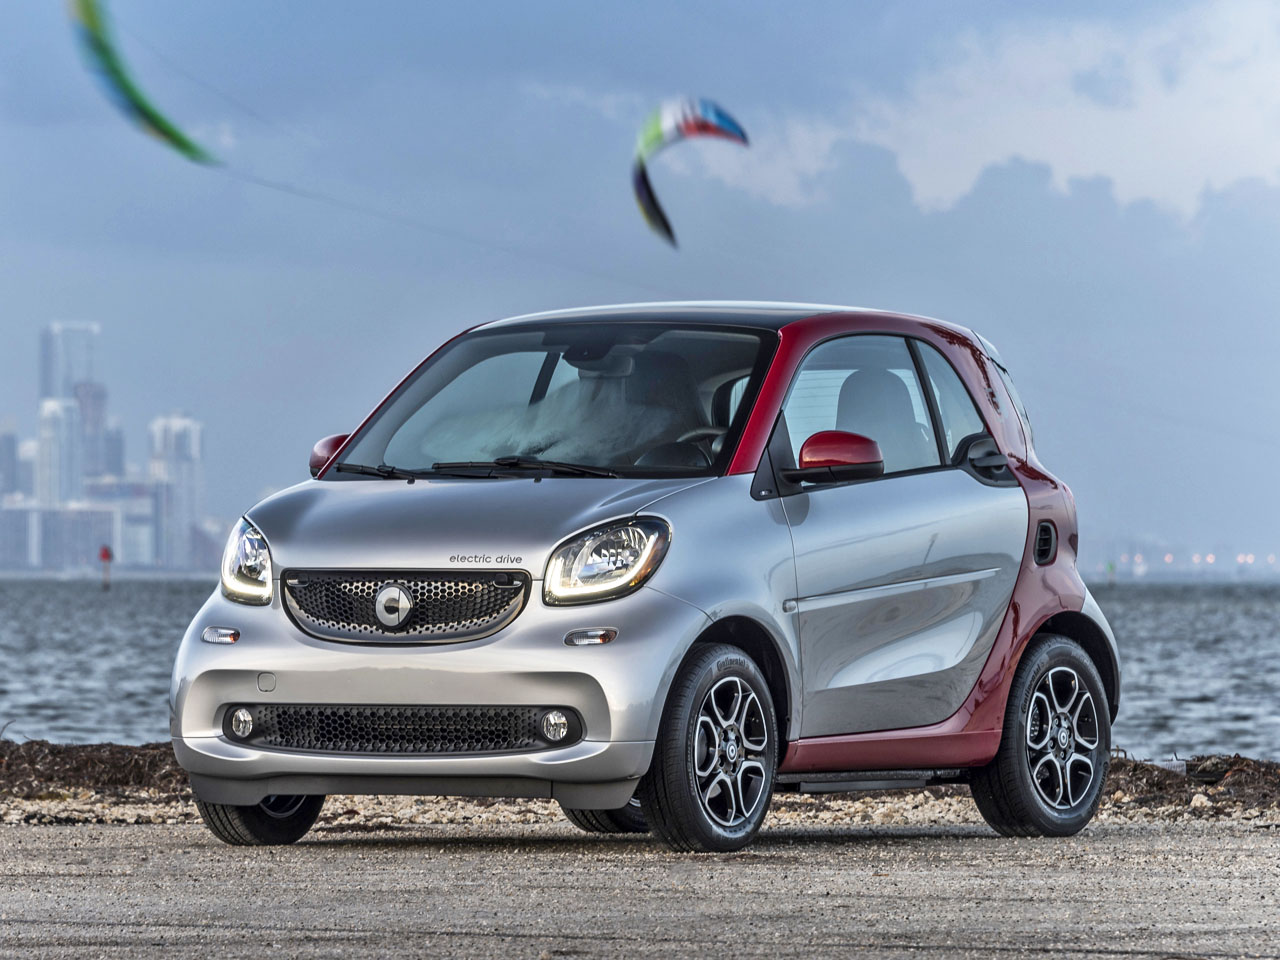 Redesigned 2017 Smart Electric Drive Adds Range And Performance Carcostcanada